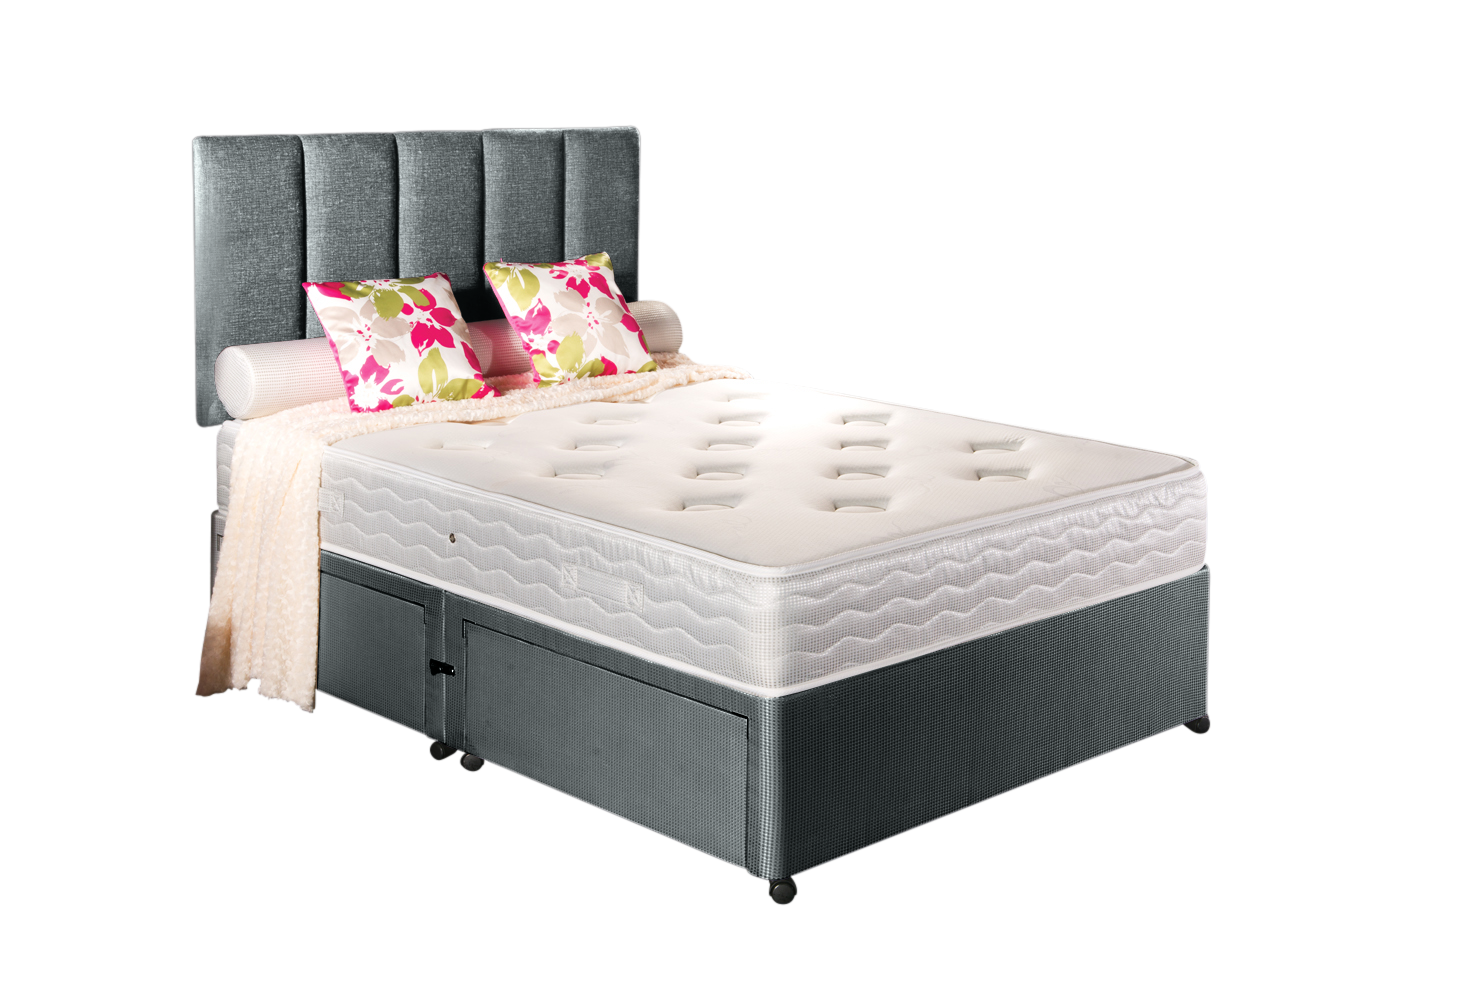 Buy cheap create a king compare beds prices for best uk for Best price for beds